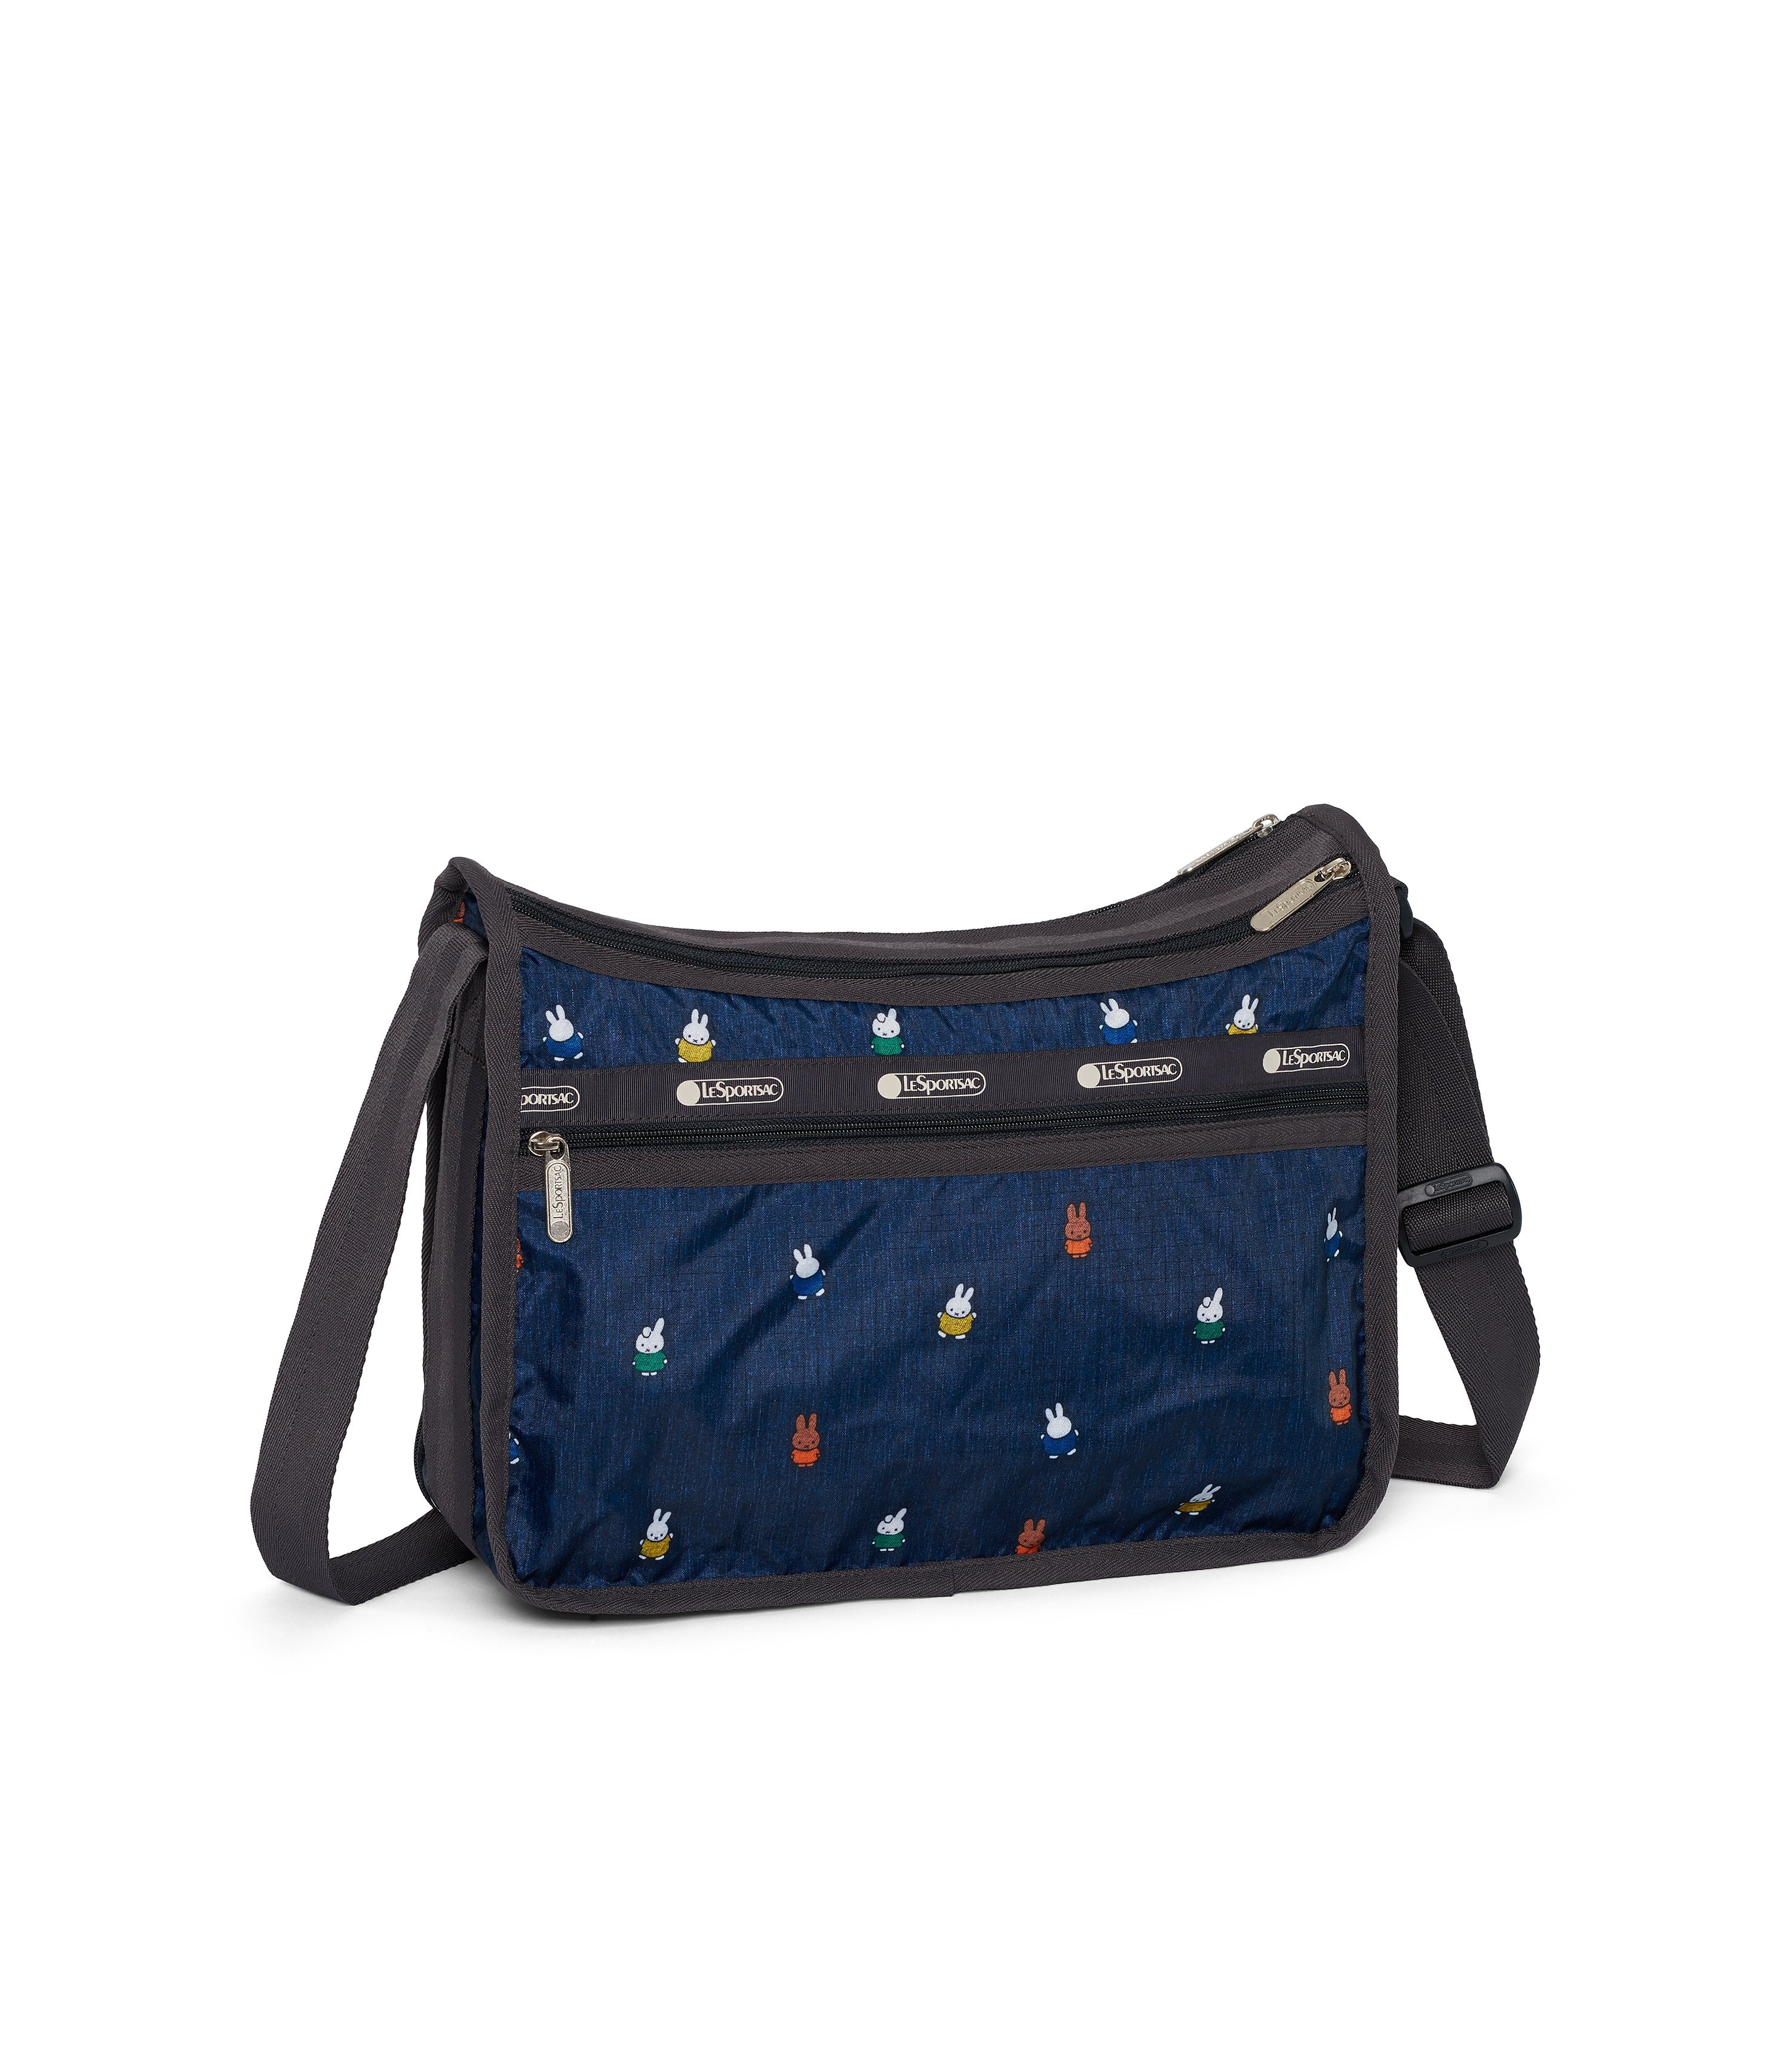 Dick Bruna - LeSportsac Deluxe Everyday Bag - Handbag - Miffy and Friends - Navy -  Back VIew